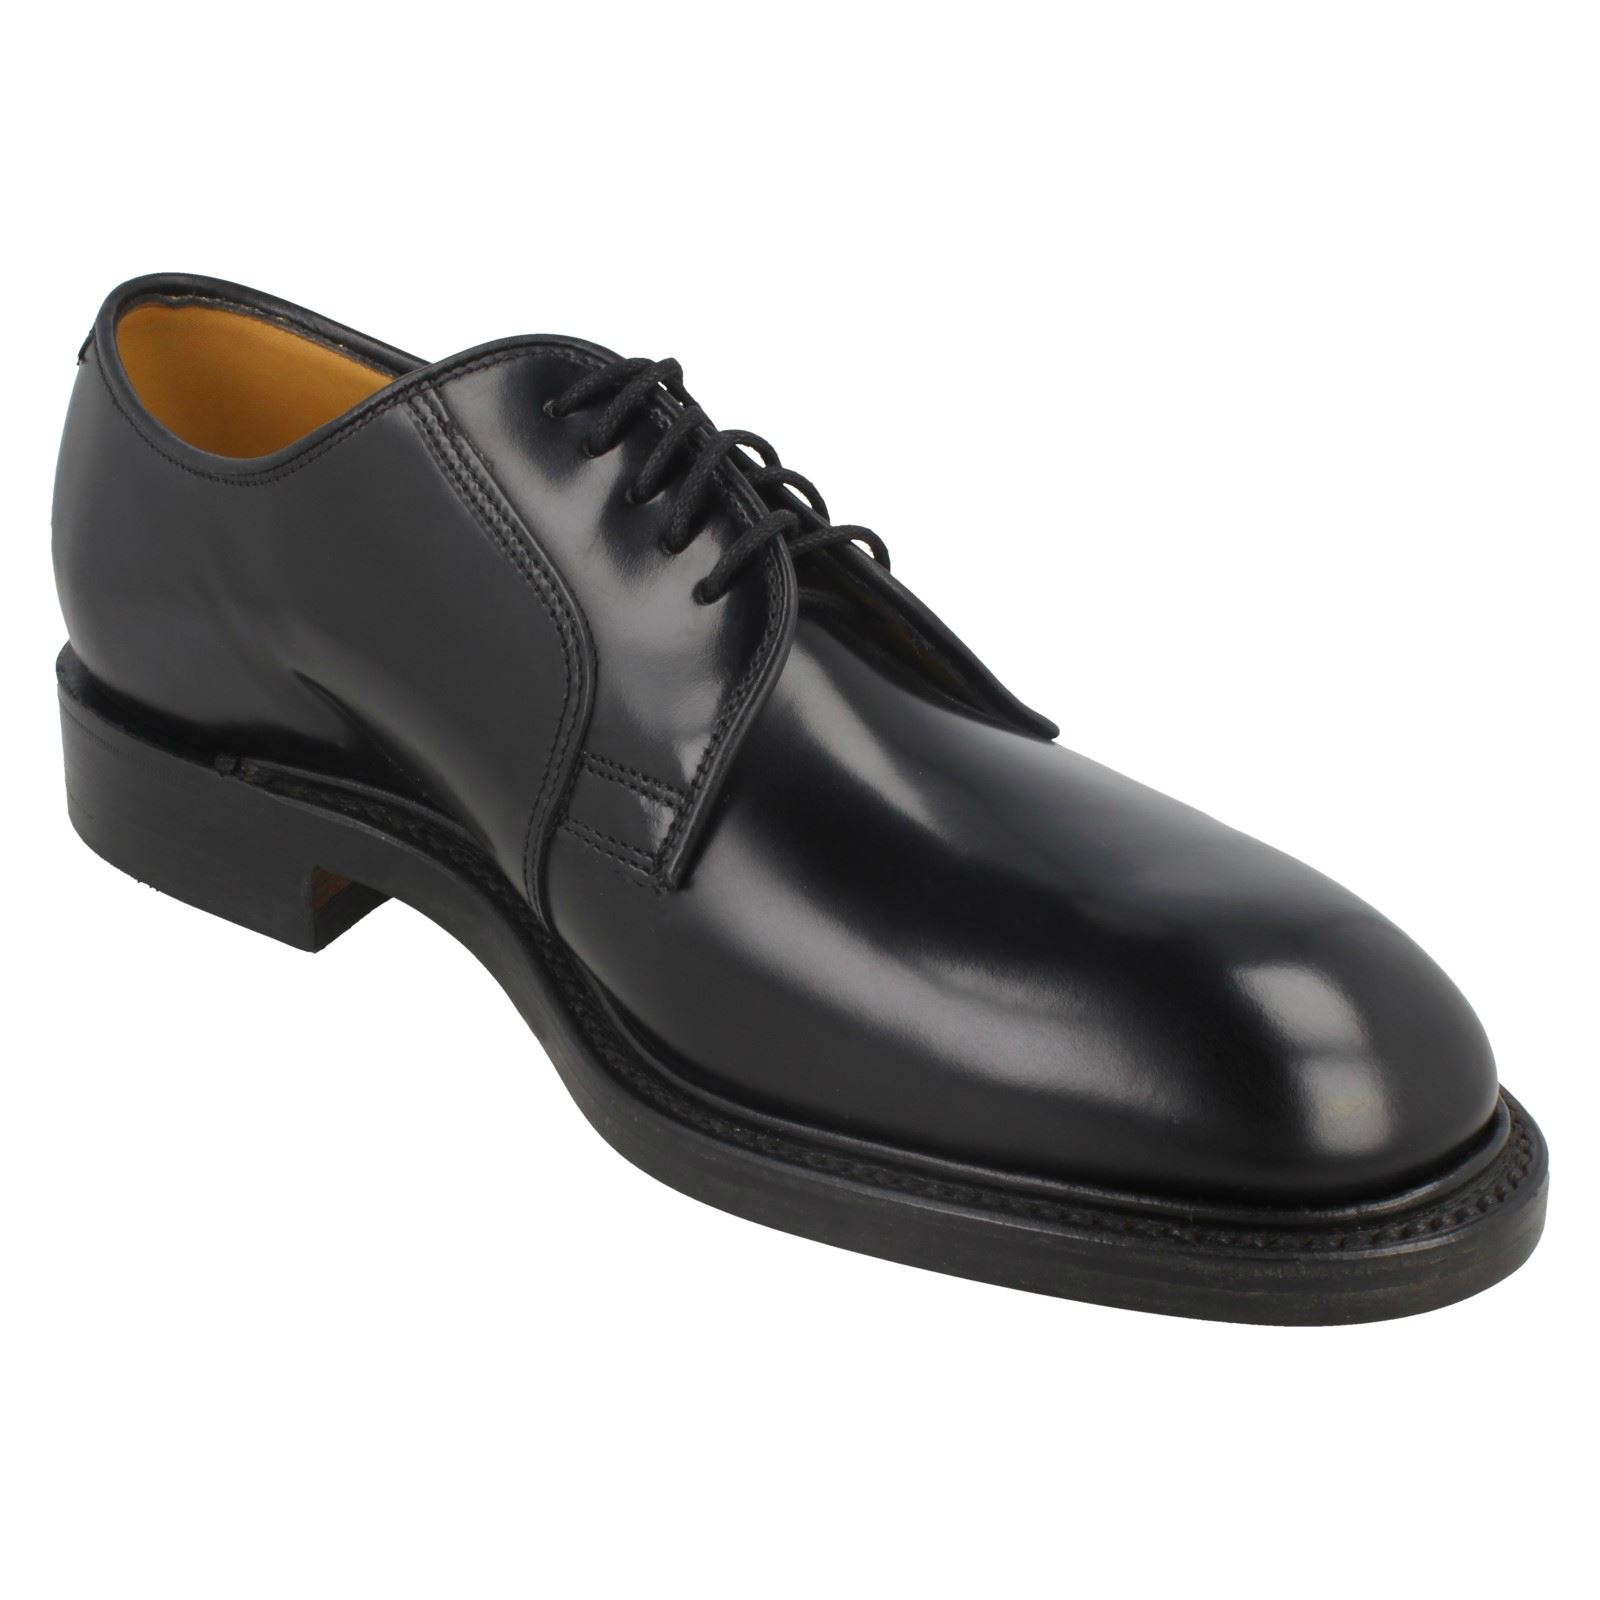 Mens Loake Polished Polished Polished Leather Formal schuhe '771B' 5bf0a0